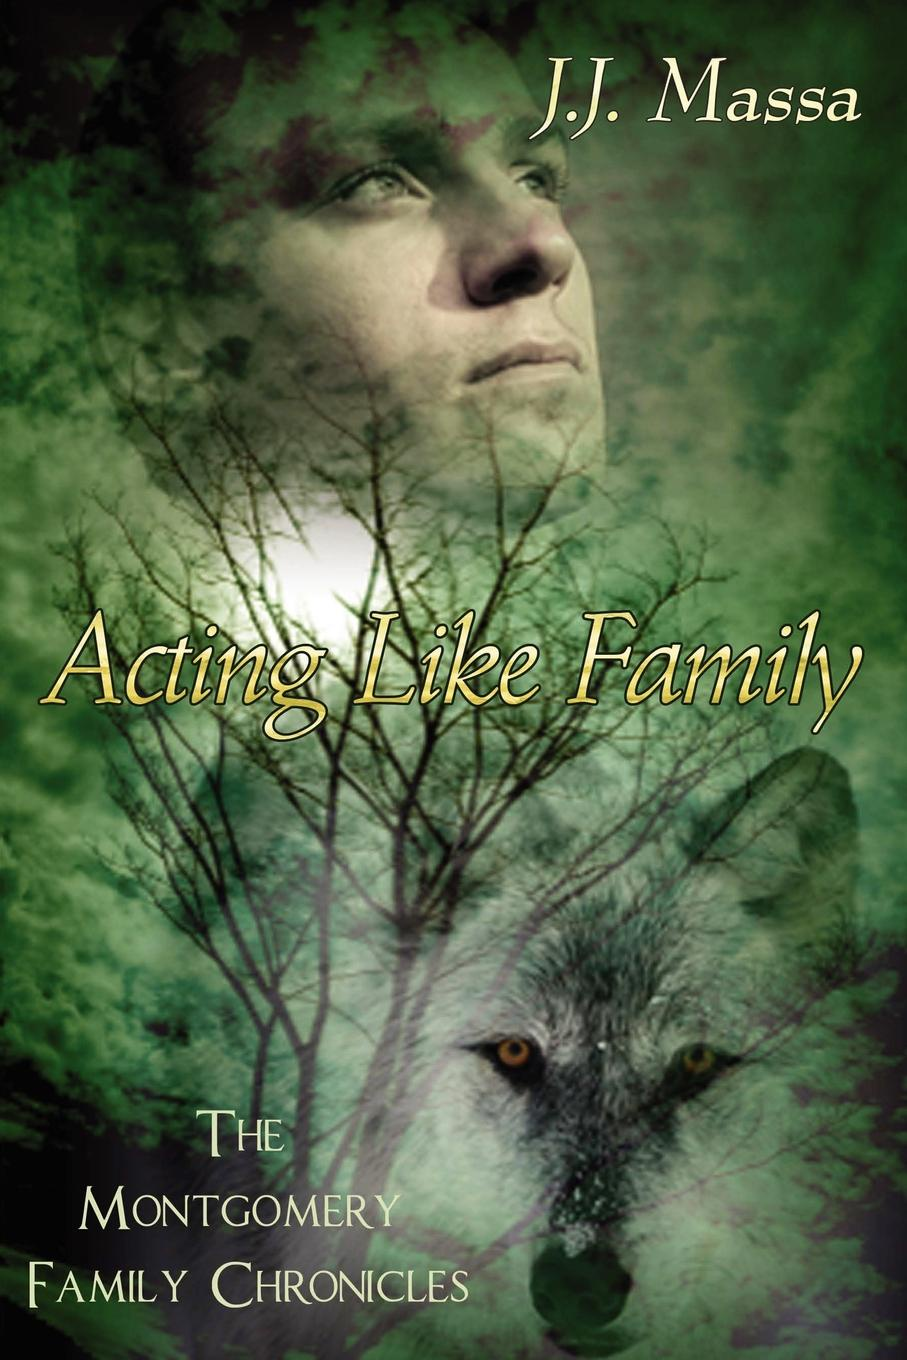 J. J. Massa The Montgomery Family Chronicles 1-Acting Like Family